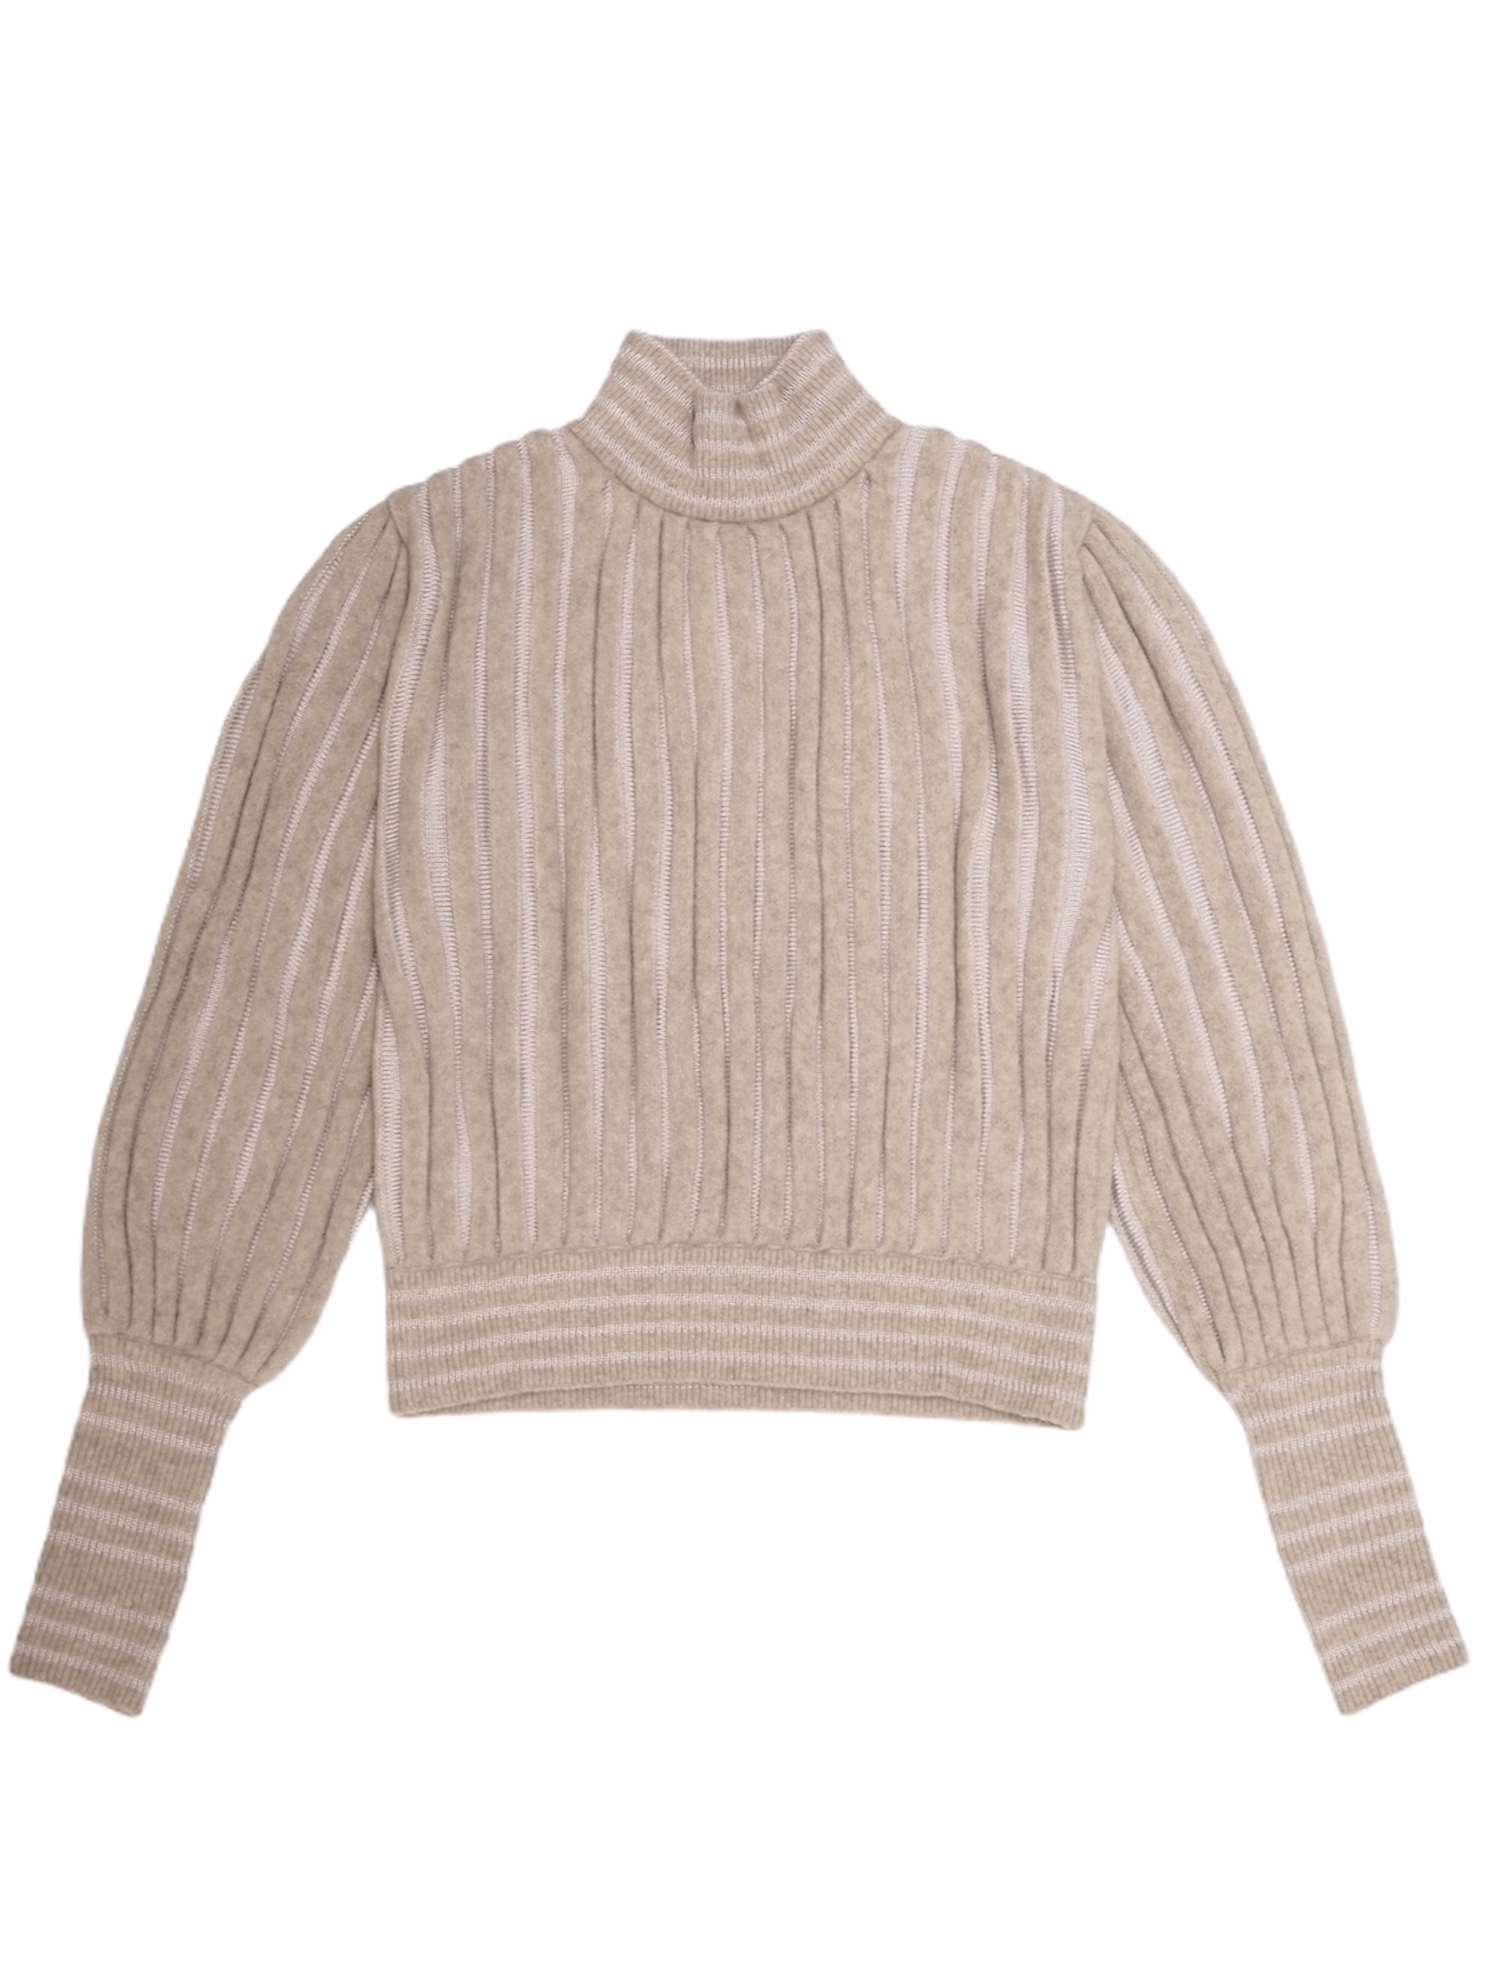 【FILL THE BILL】ACCORDION KNIT PULLOVER